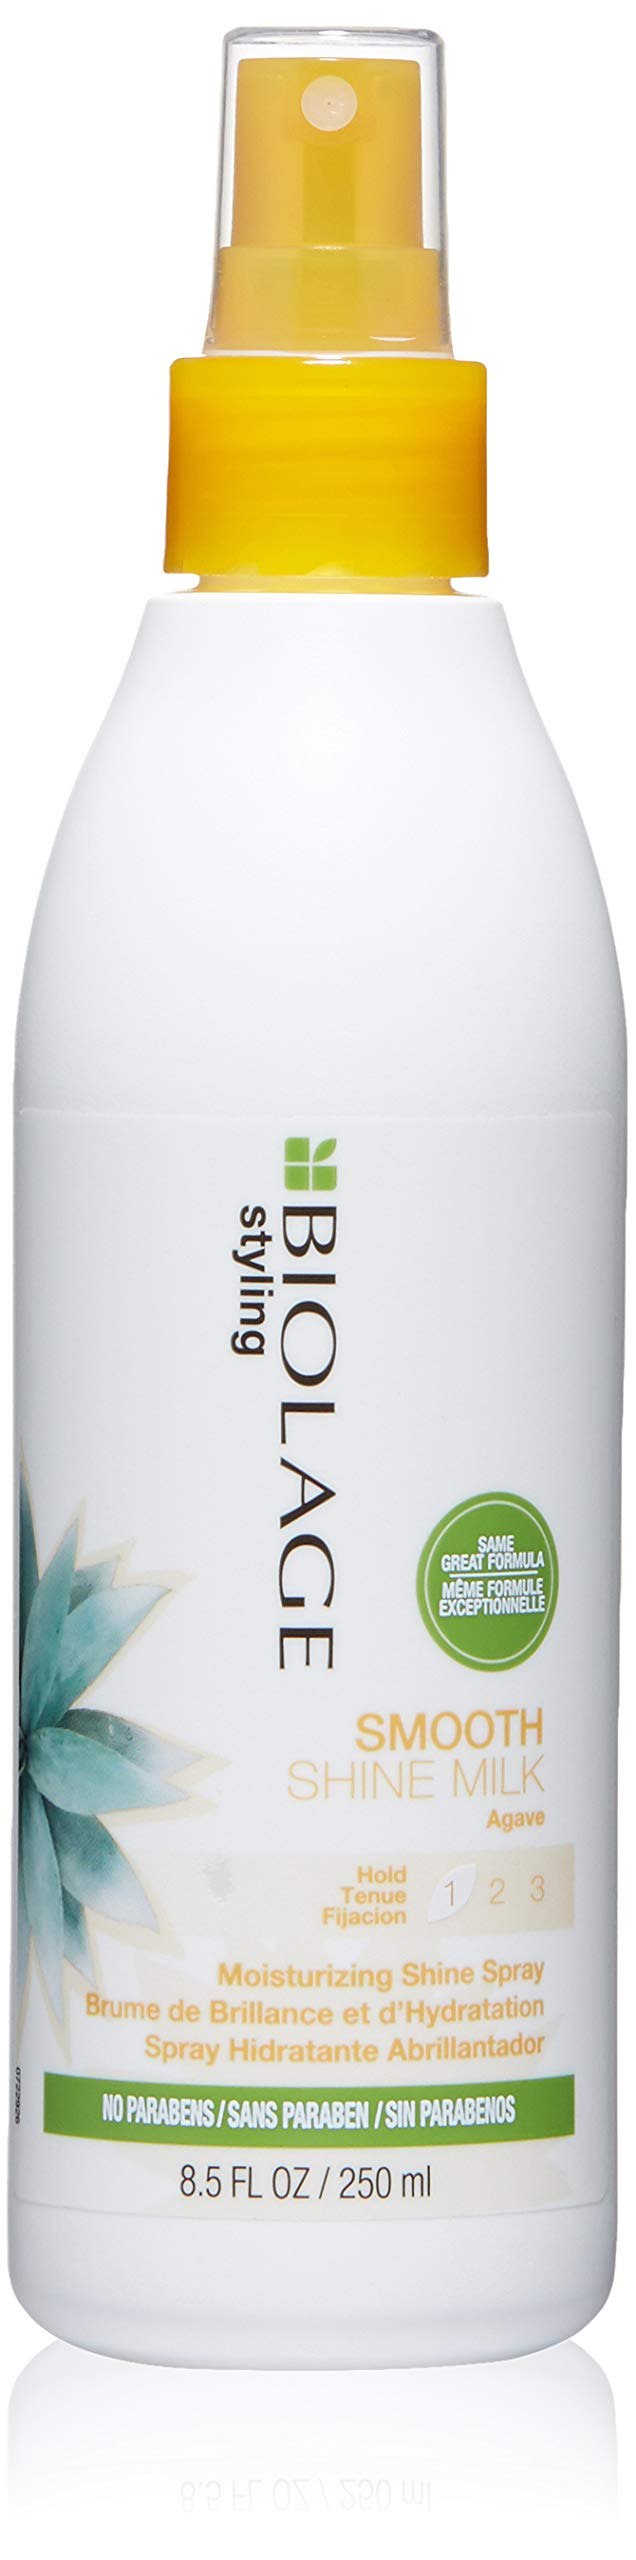 BIOLAGE Styling Smooth Shine Milk, 8.5 Fl Oz by BIOLAGE